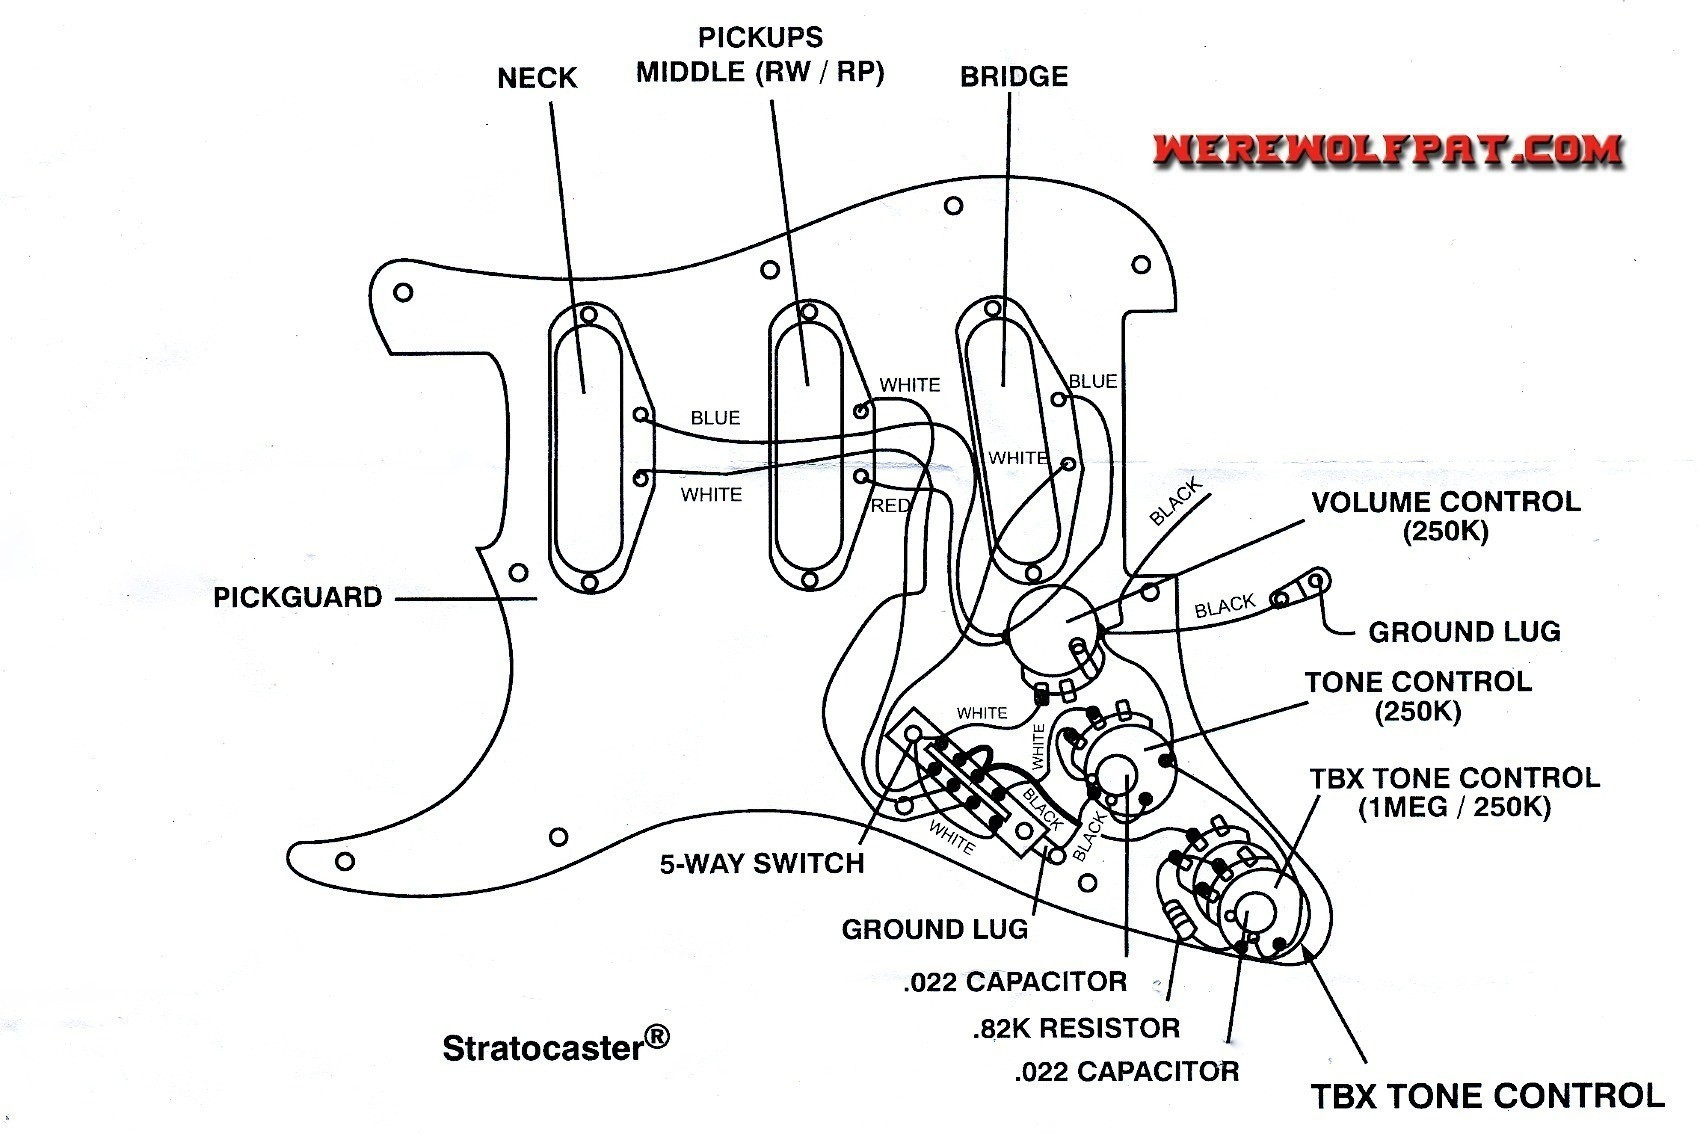 hight resolution of wiring diagram fender ultra strat plus wiring fender strat wiring fender stratocaster diagram fender strat diagram